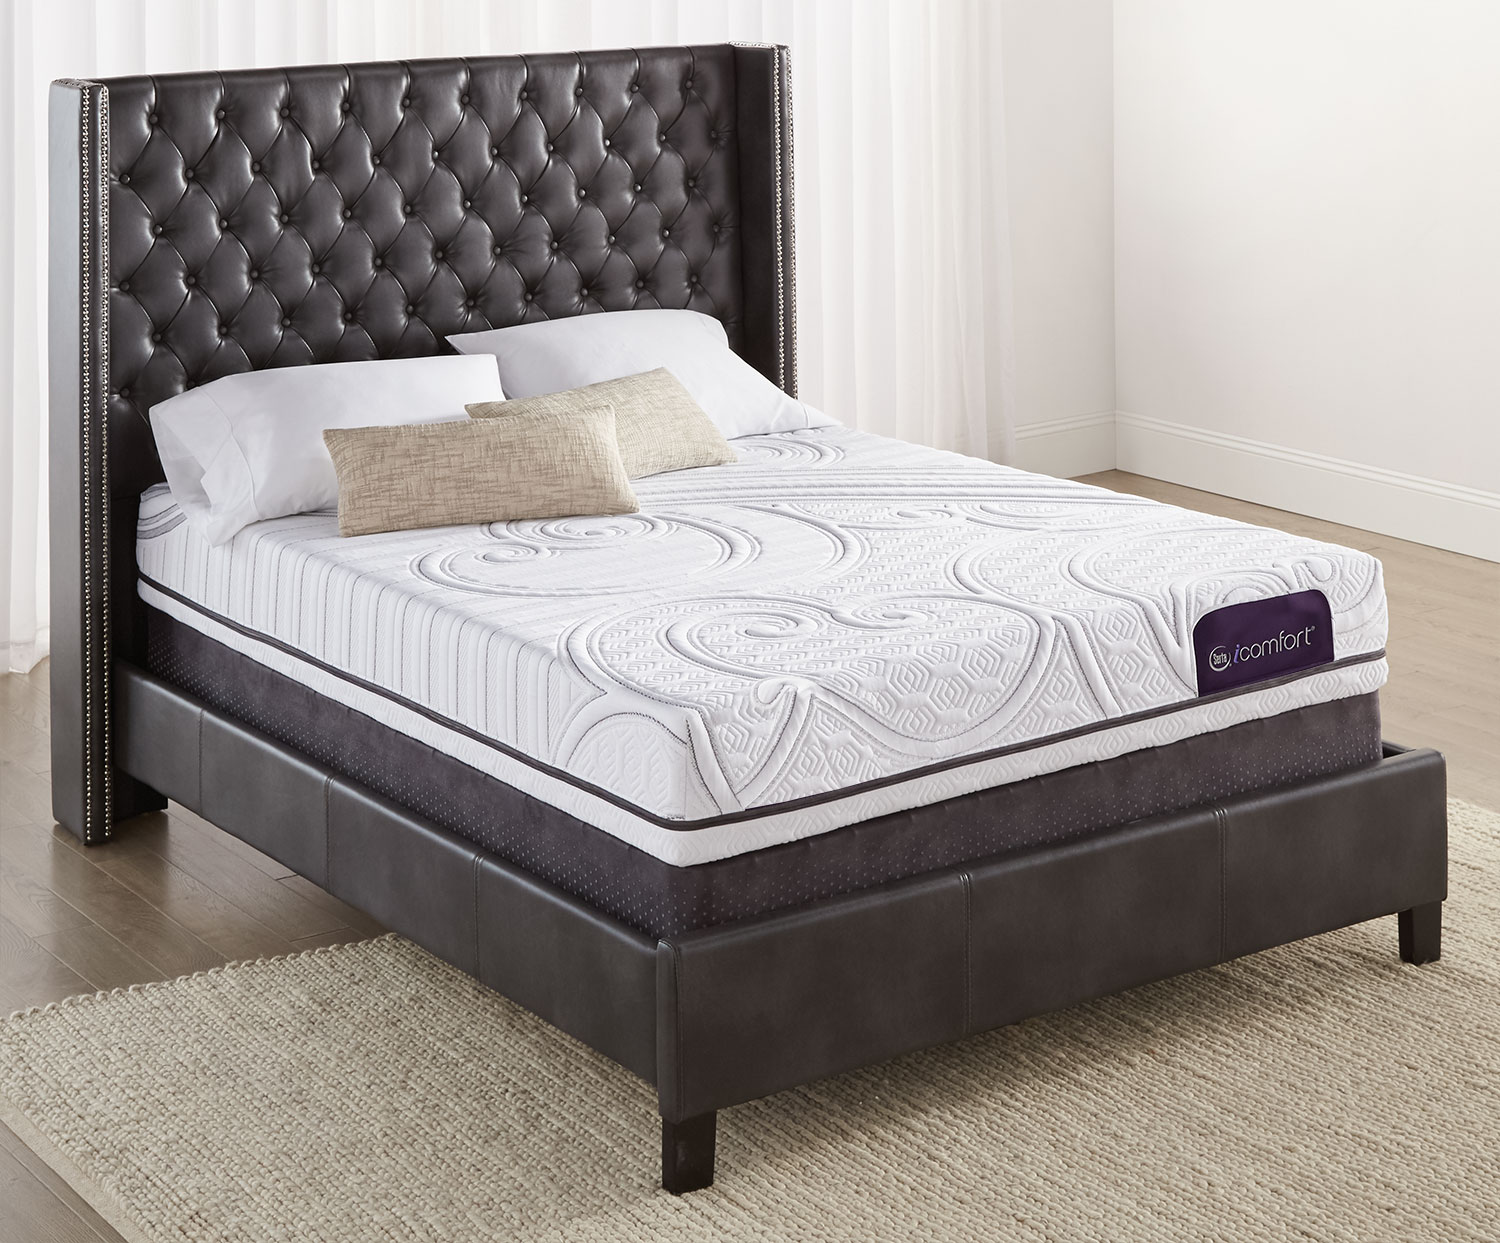 Serta iComfort Aura 2 Firm Queen Mattress with Low-Profile Split Boxspring Set